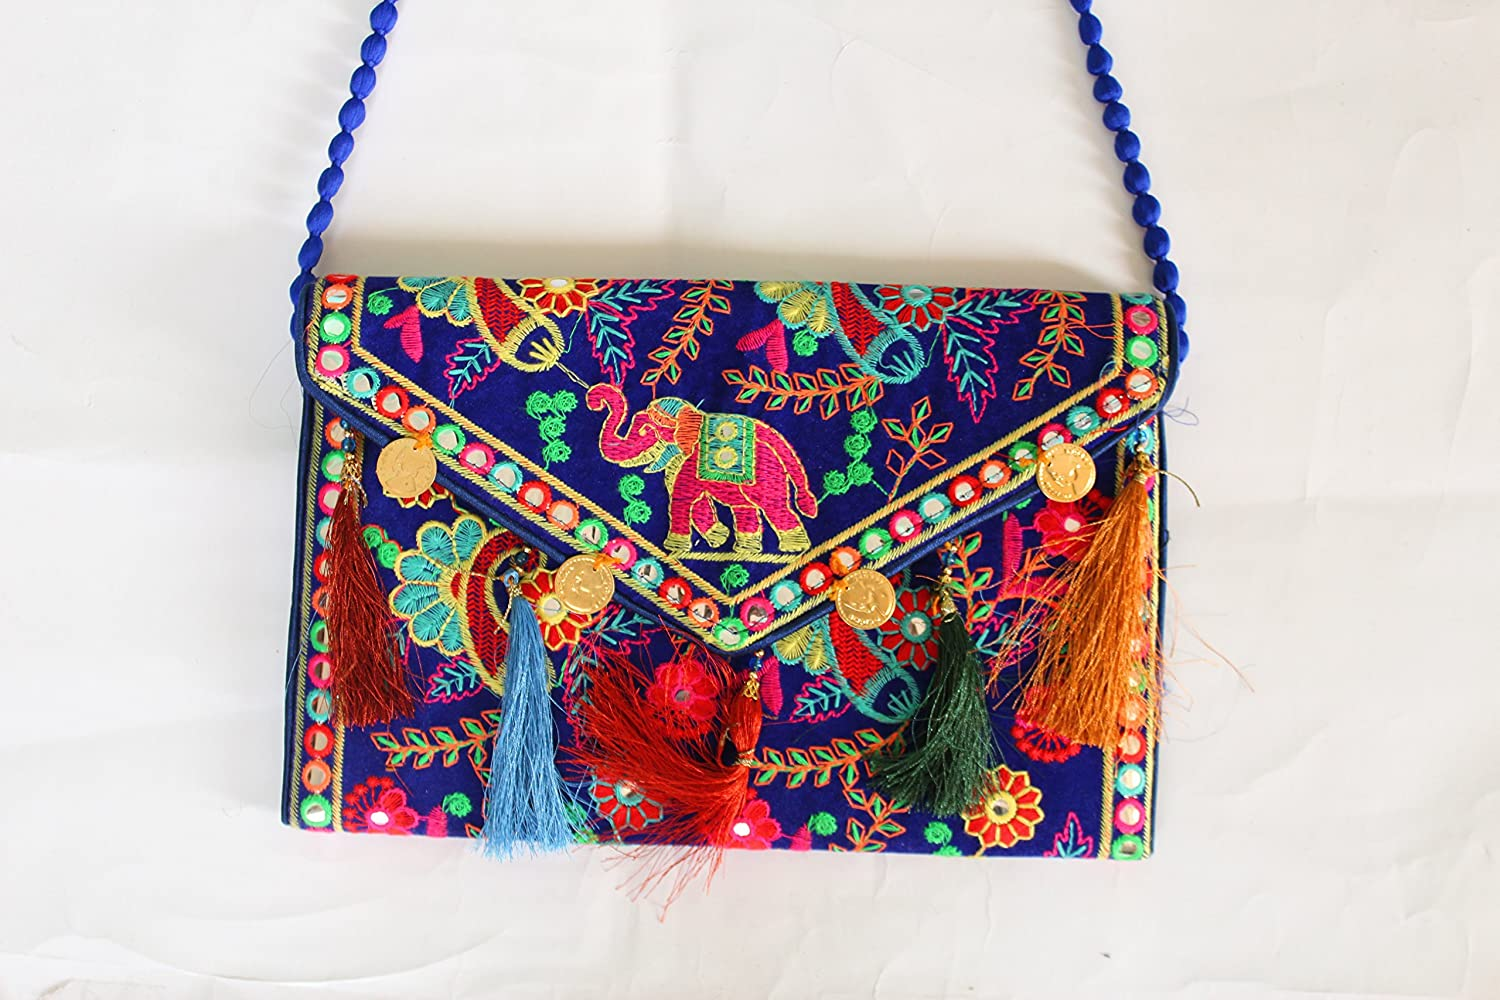 5ae01d5ae08f Hippie Handmade handbags for women Cotton Elephant Embroidery coin work  Ethnic Vintage bohemian Tribal Banjara Clutch Black Bags Purse  Amazon.in   Clothing ...